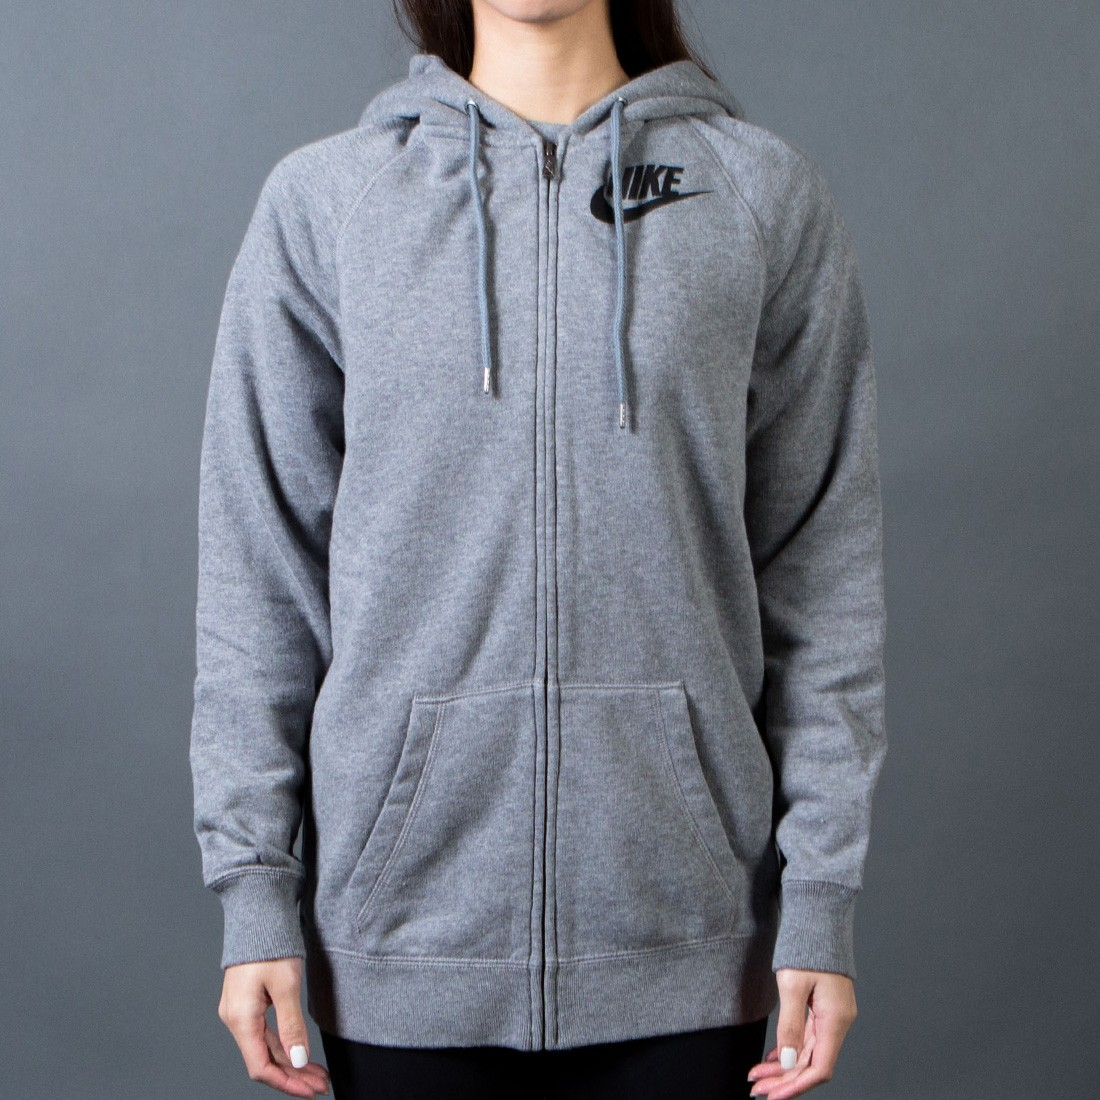 Nike Hoodie Carbon Heather Nike Women Rally Boyfriend Full Zip Hoodie Grey Carbon Heather Cool Grey Black